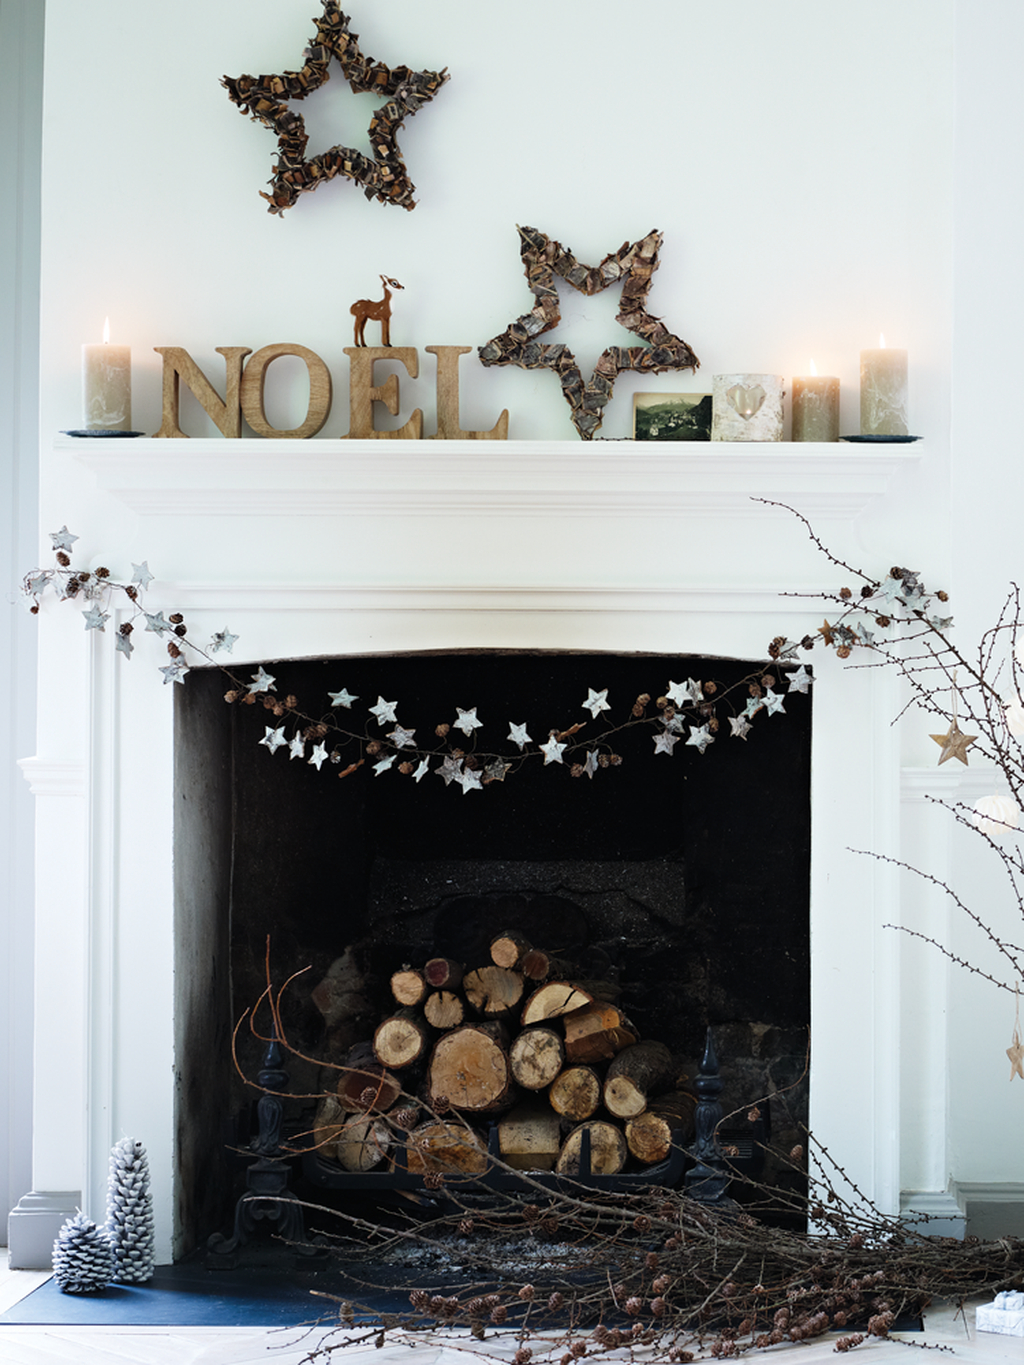 Inspiring Rustic Christmas Fireplace Ideas To Makes Your Home Warmer 42